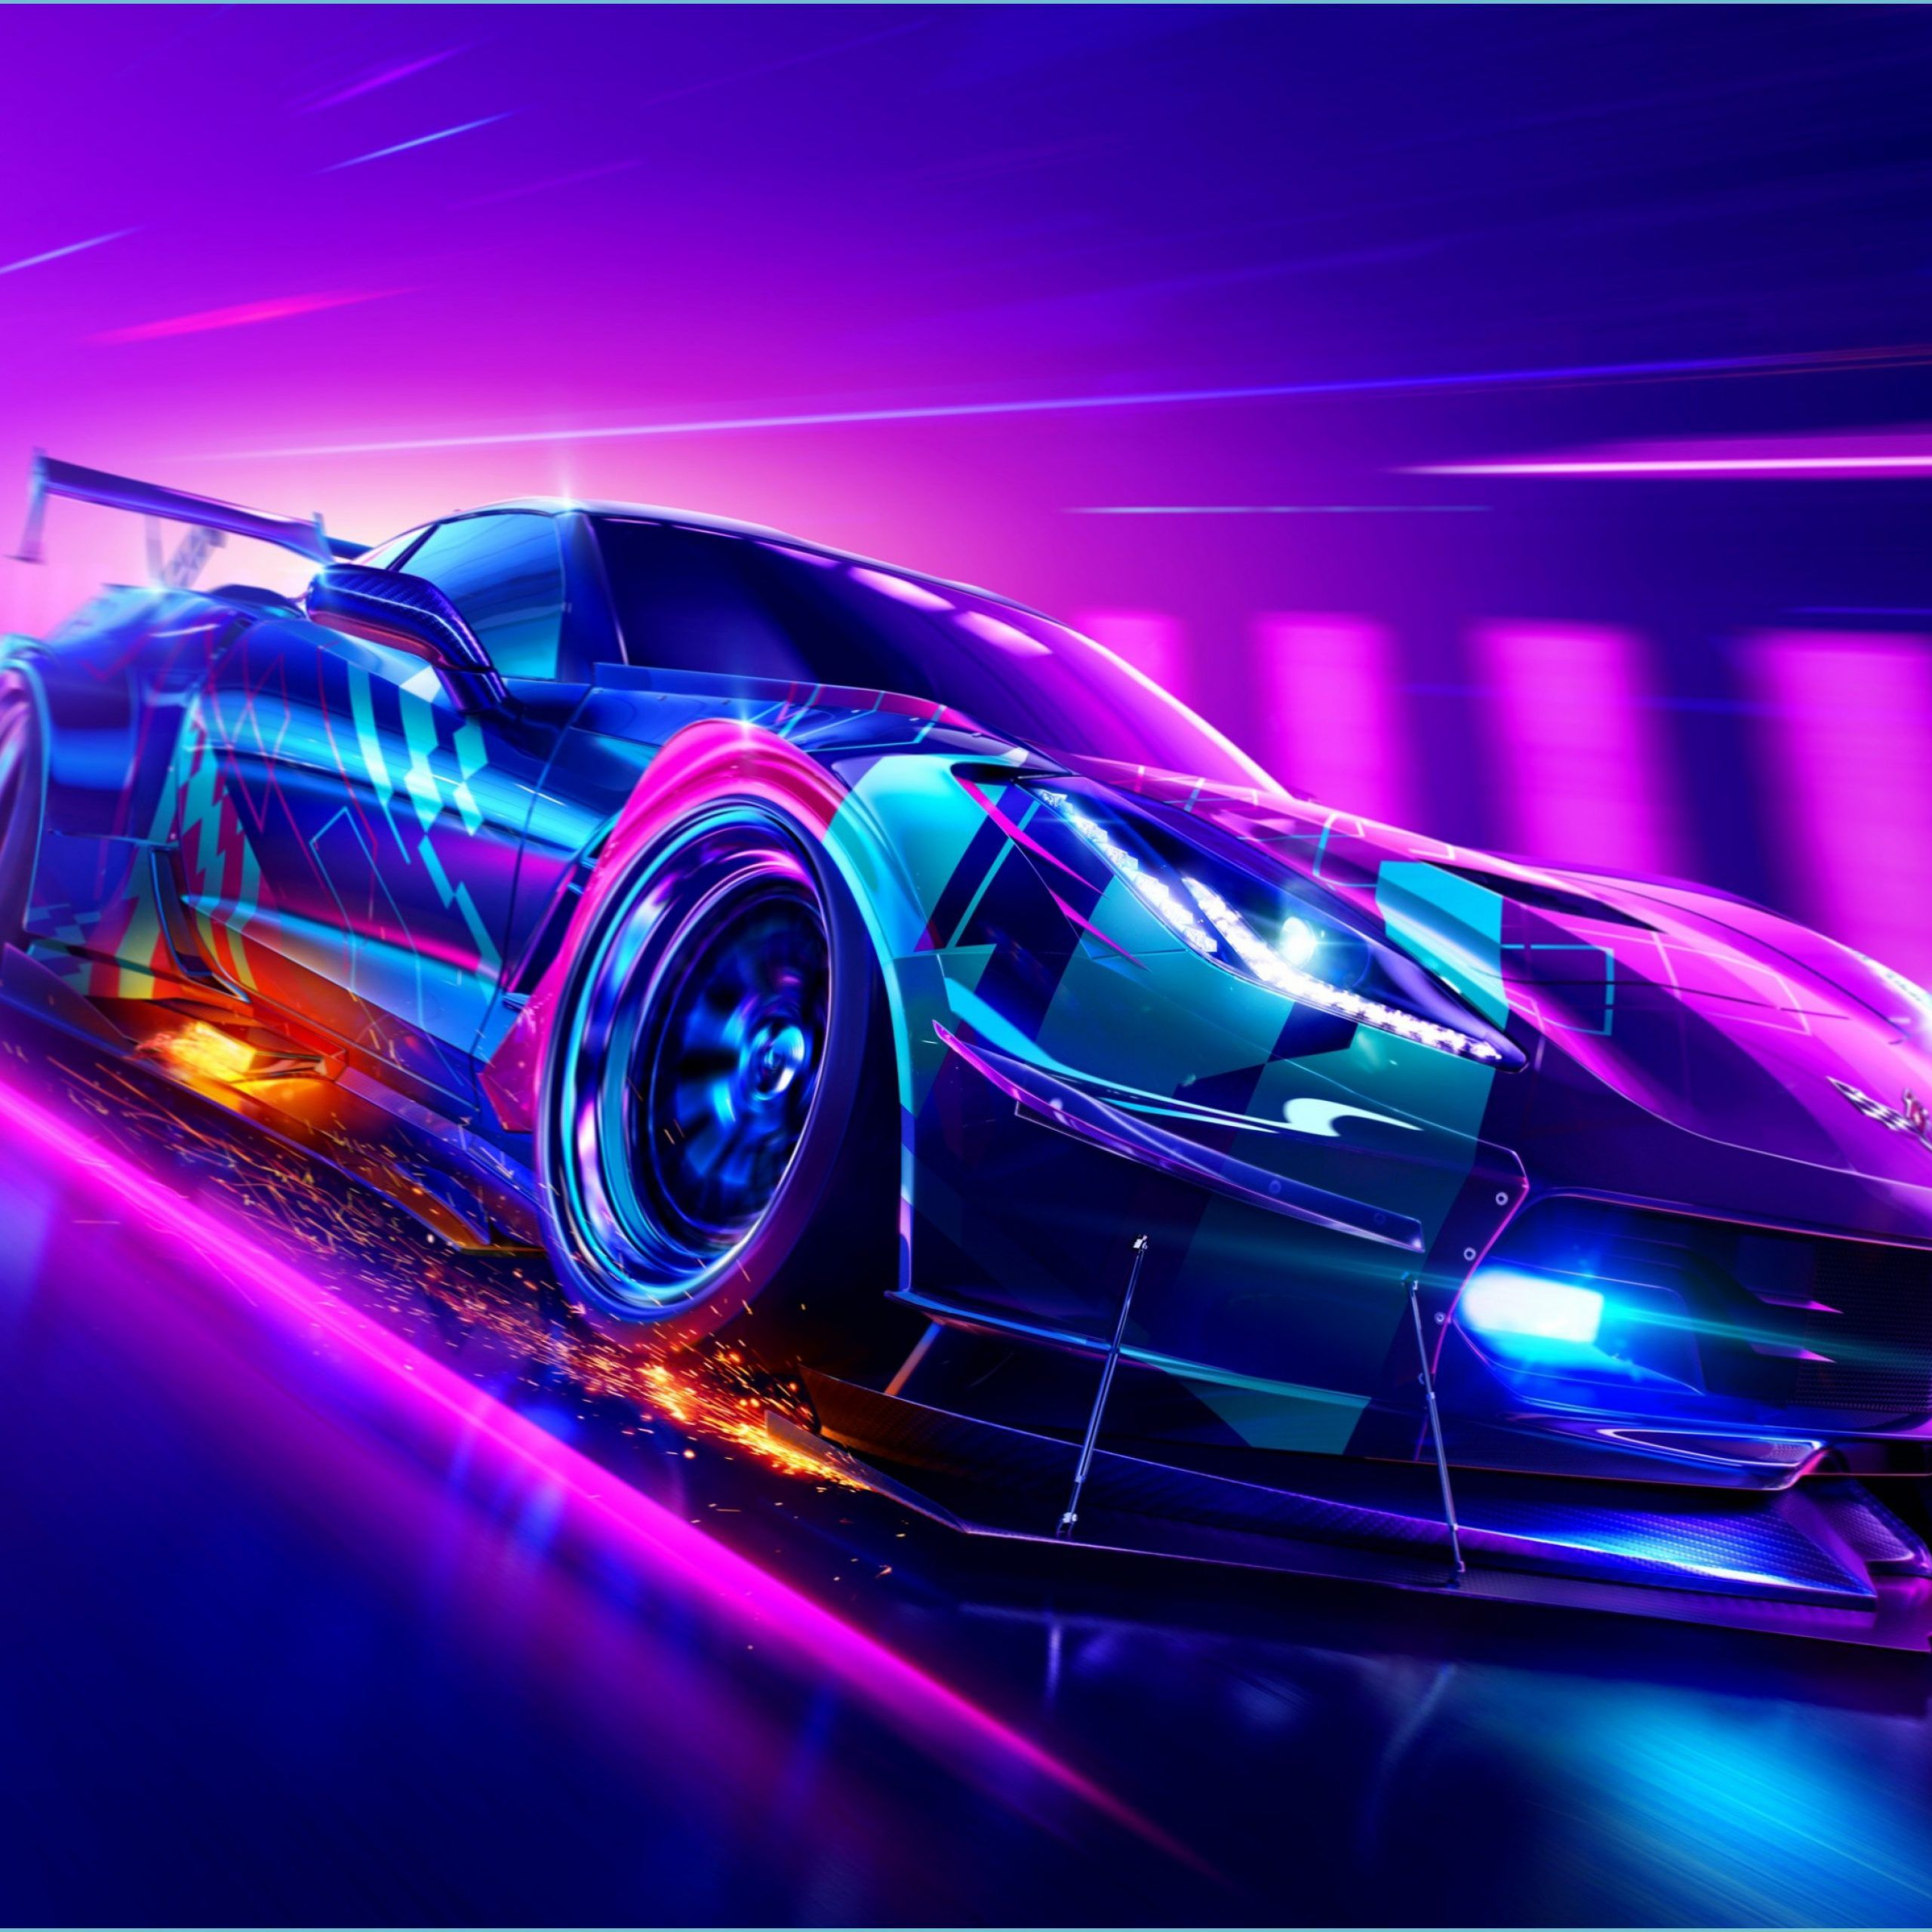 Mac, laptop, tablet, mobile phone category: Scary Cars Wallpapers Wallpaper Cave